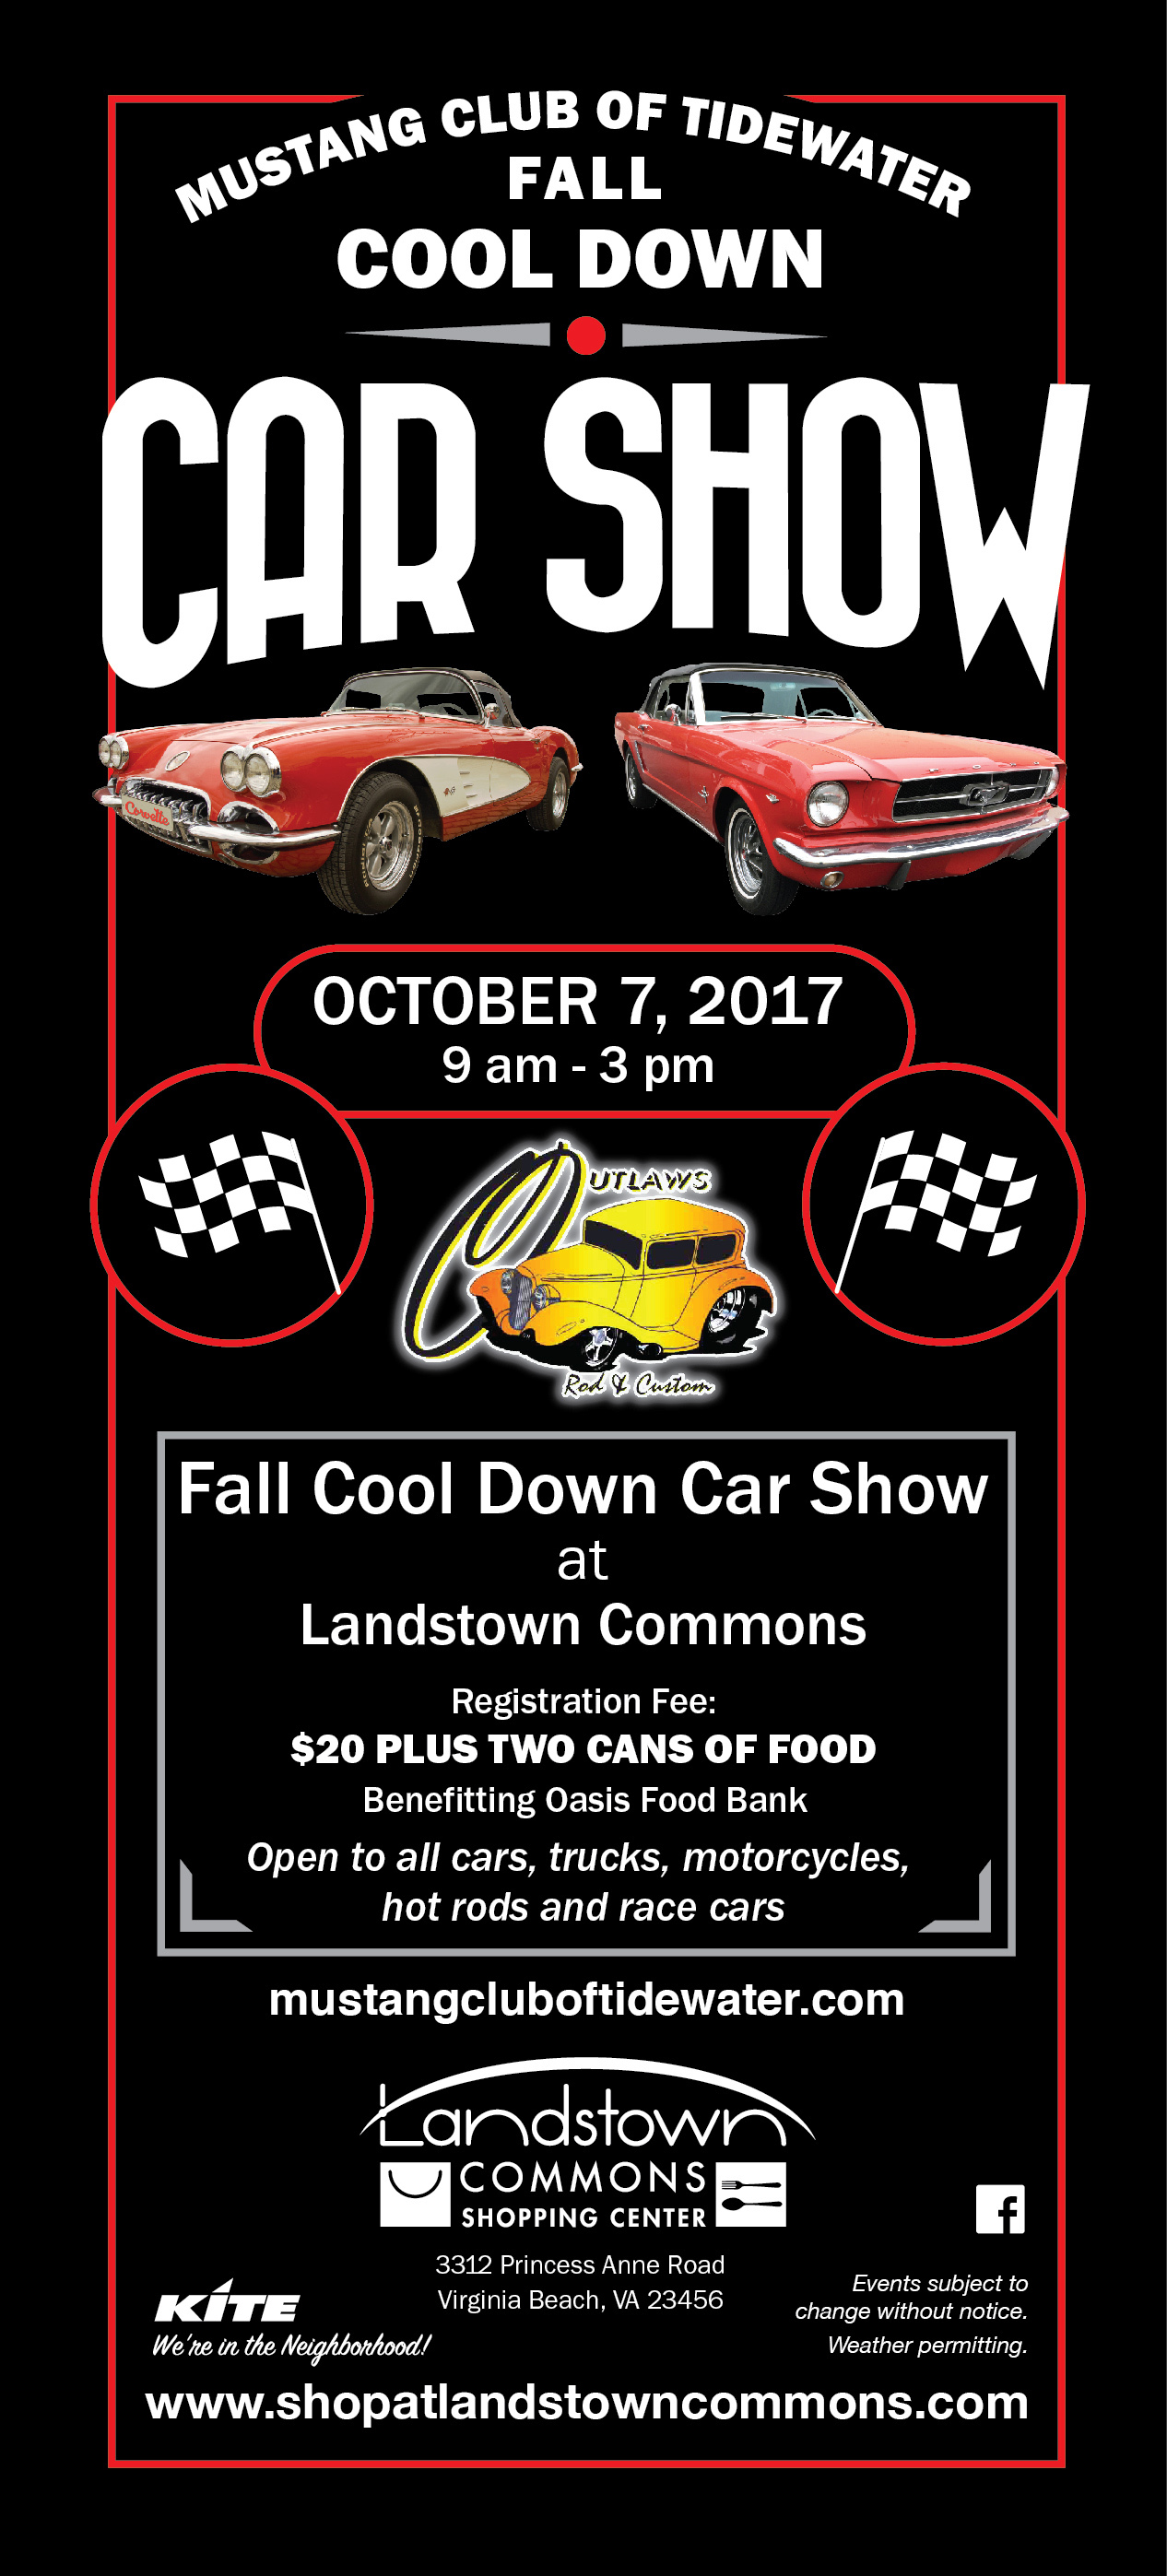 Events Landstown Commons - Virginia beach car show